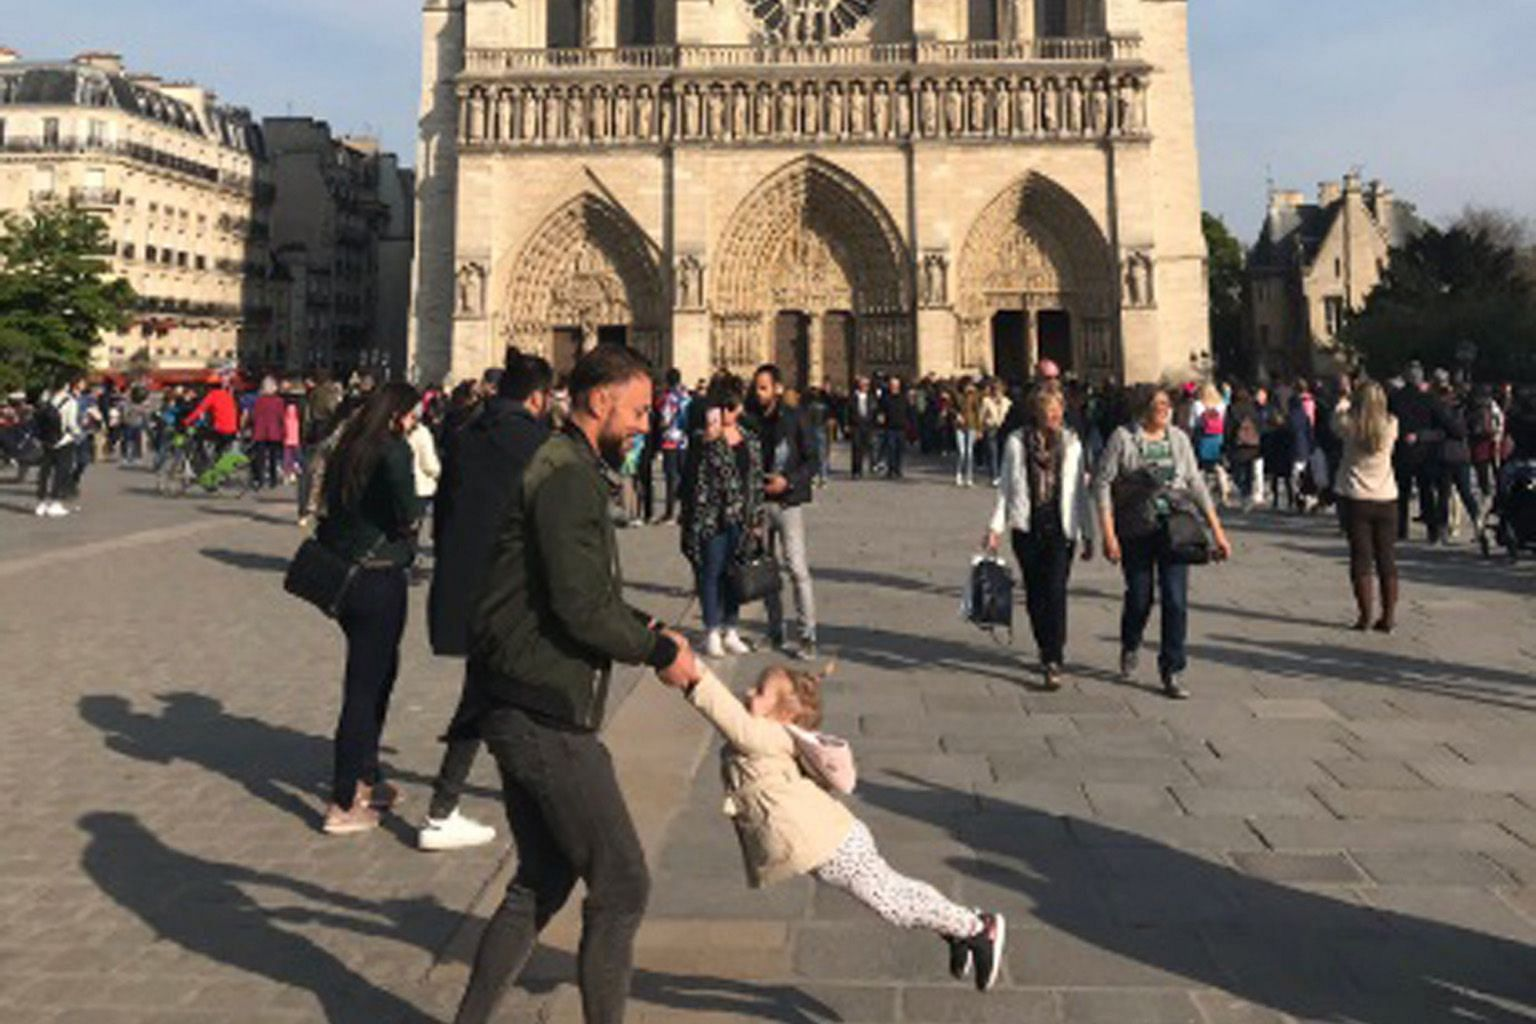 US tourist Brooke Windsor photographed this man and his daughter in front of Notre-Dame cathedral in Paris on Monday, an hour before the fire broke out. The photo reached the family, after her tweet went viral.